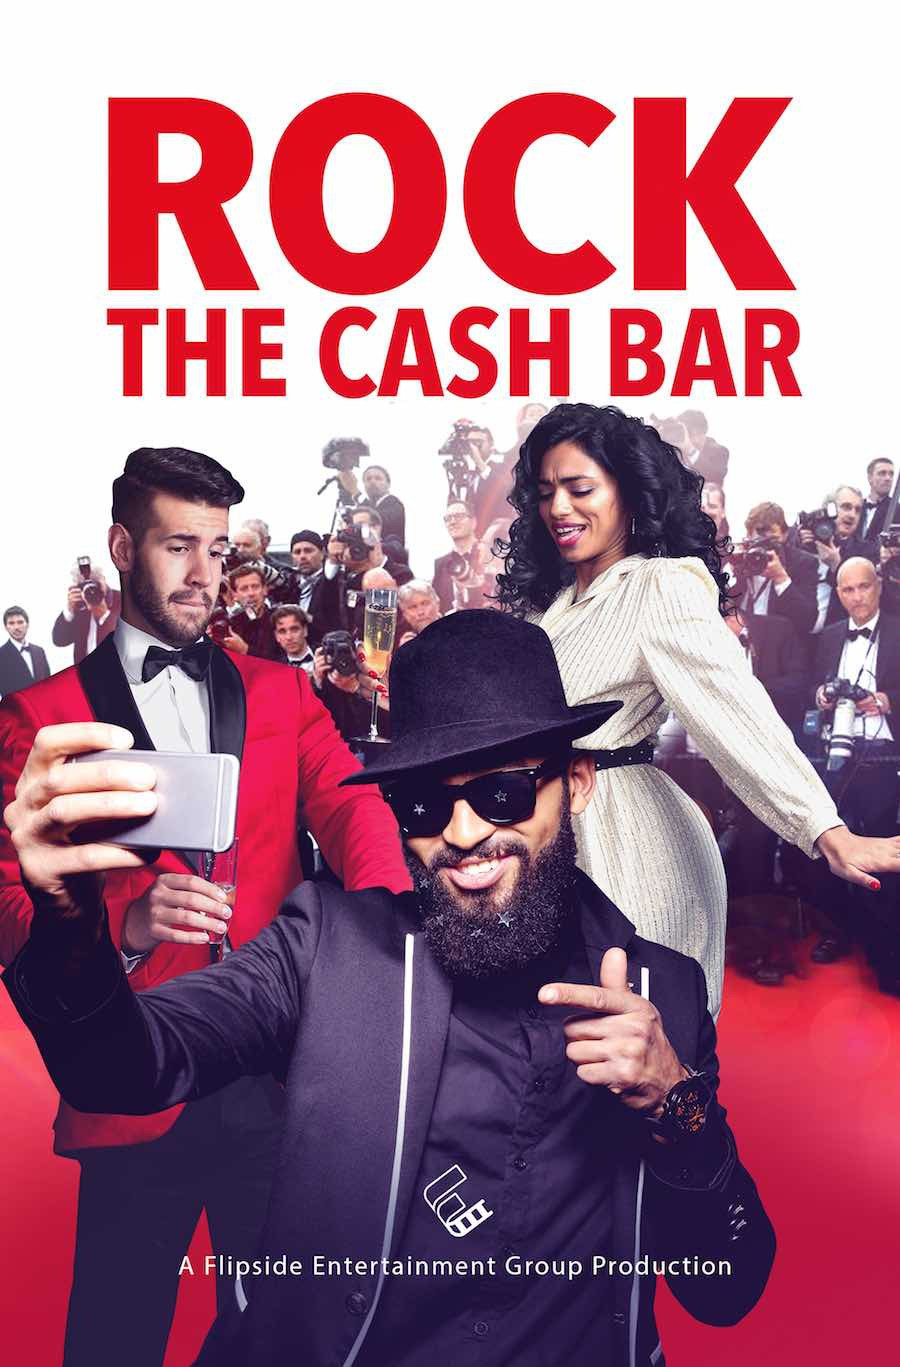 Rock_The_Cash_Bar_Poster.jpg